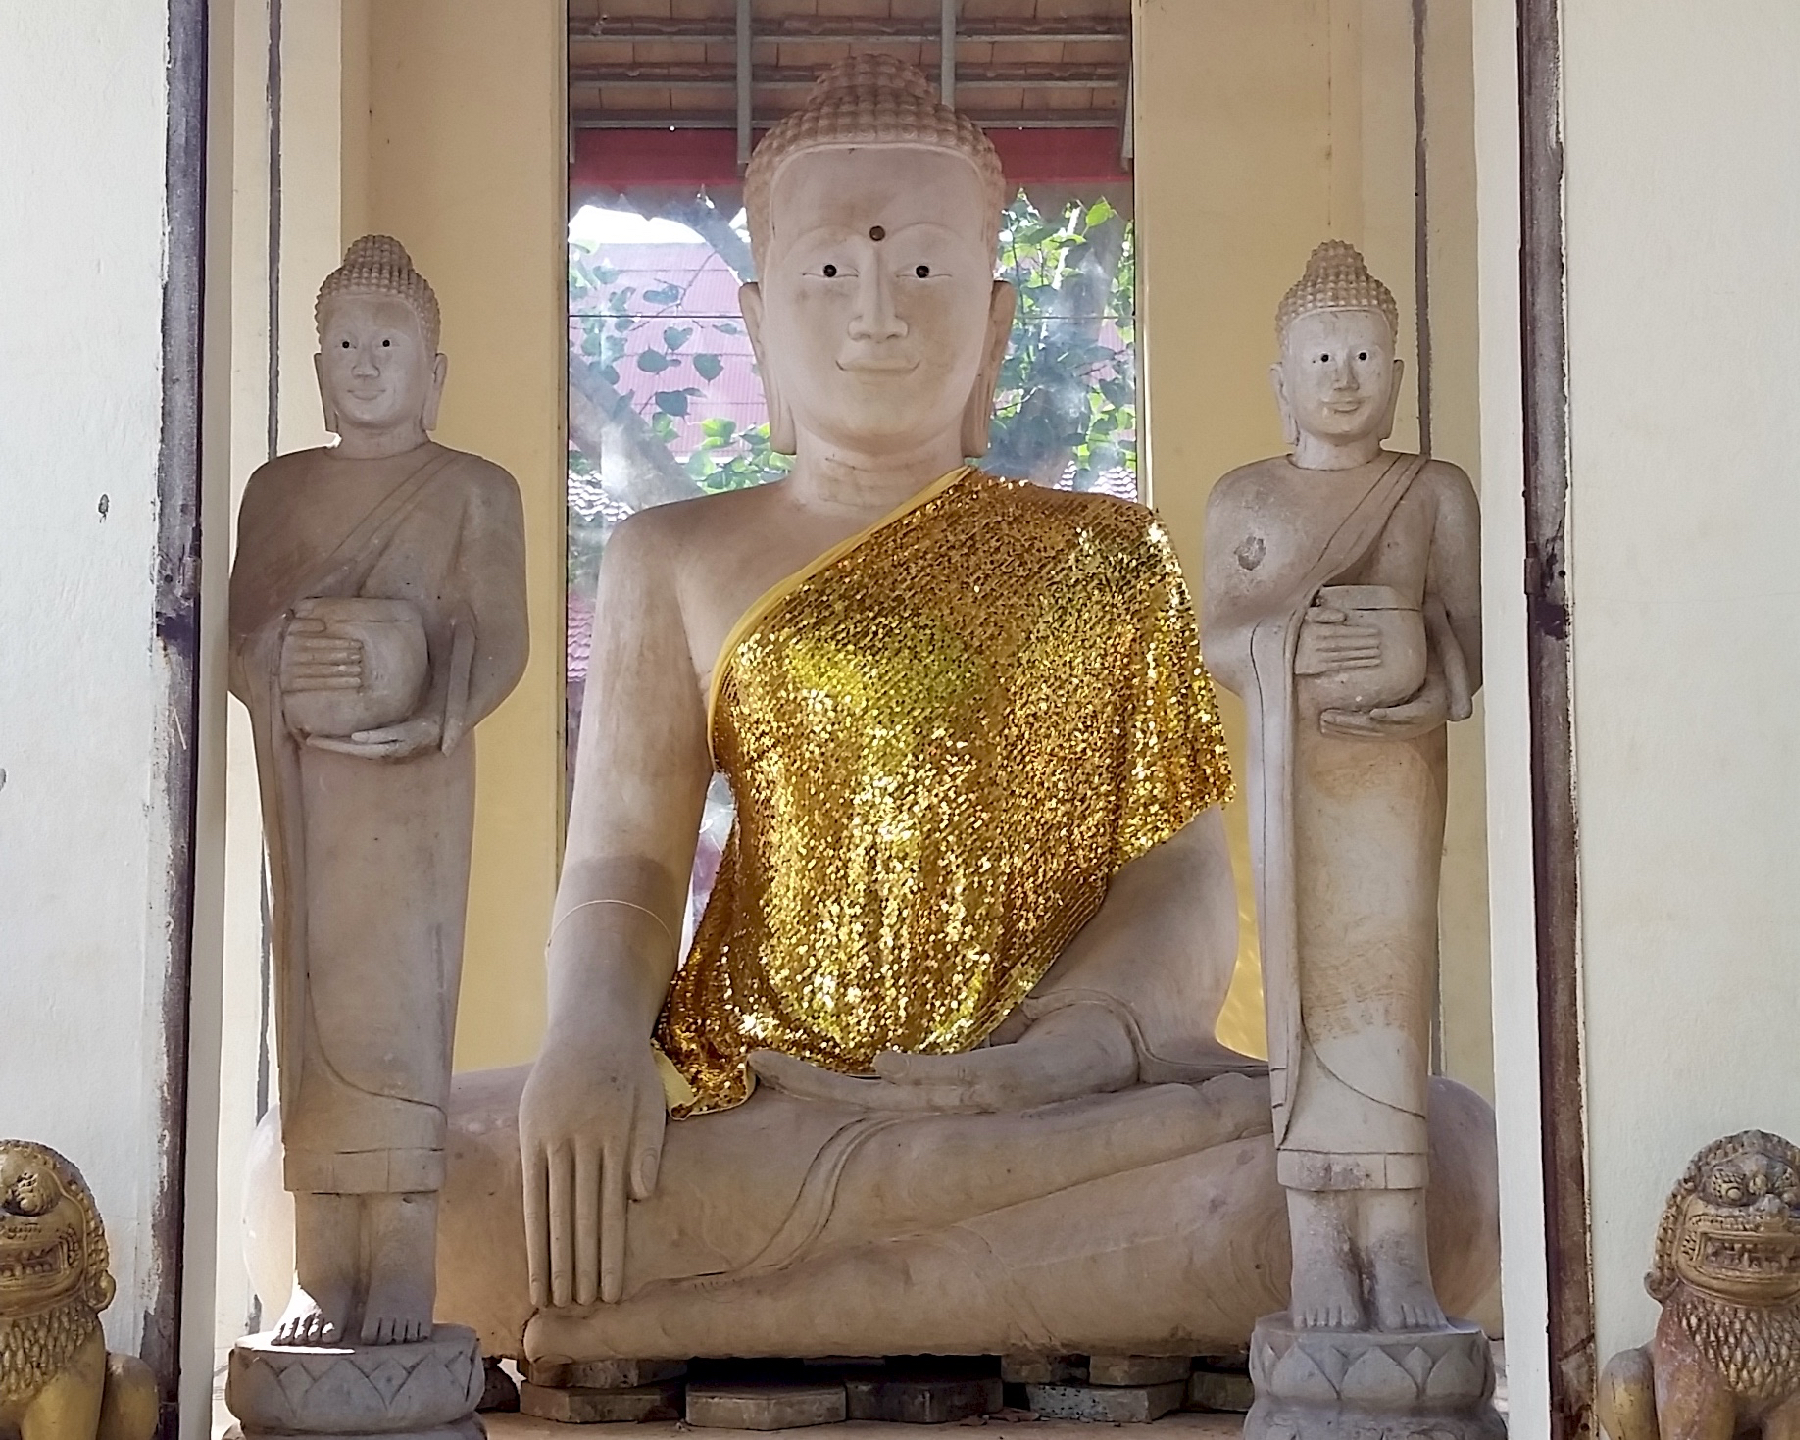 This Buddha is ready for a night on the town with the lads.